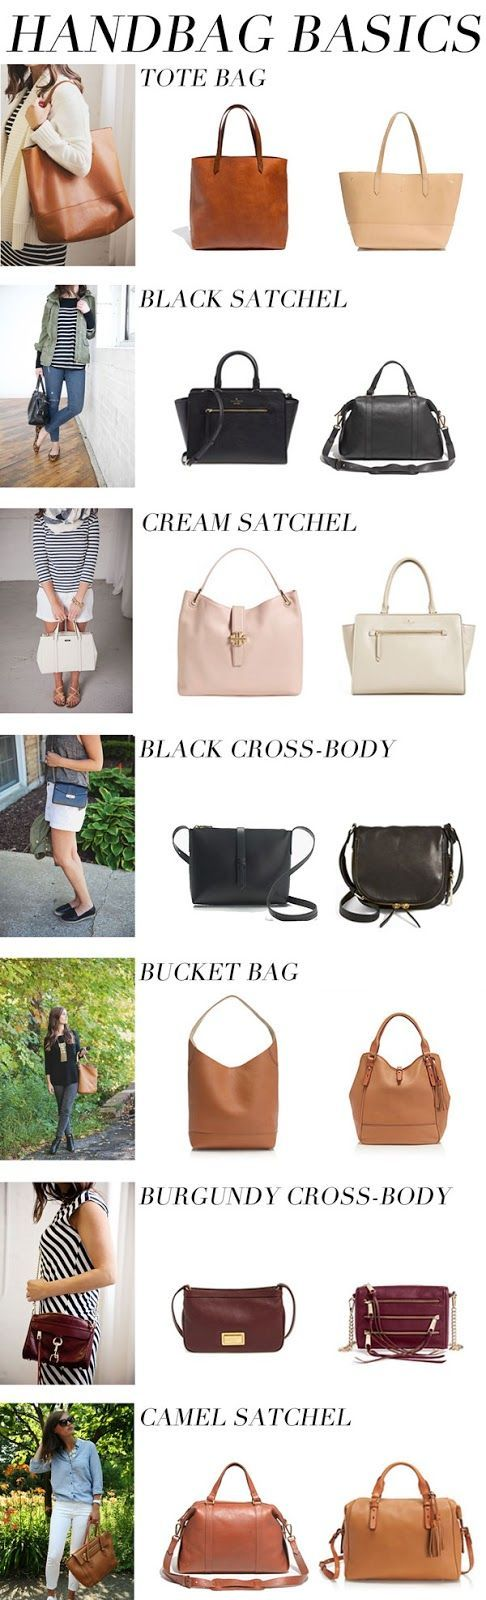 handbag basics... | The Good Life For Less | Bloglovin'